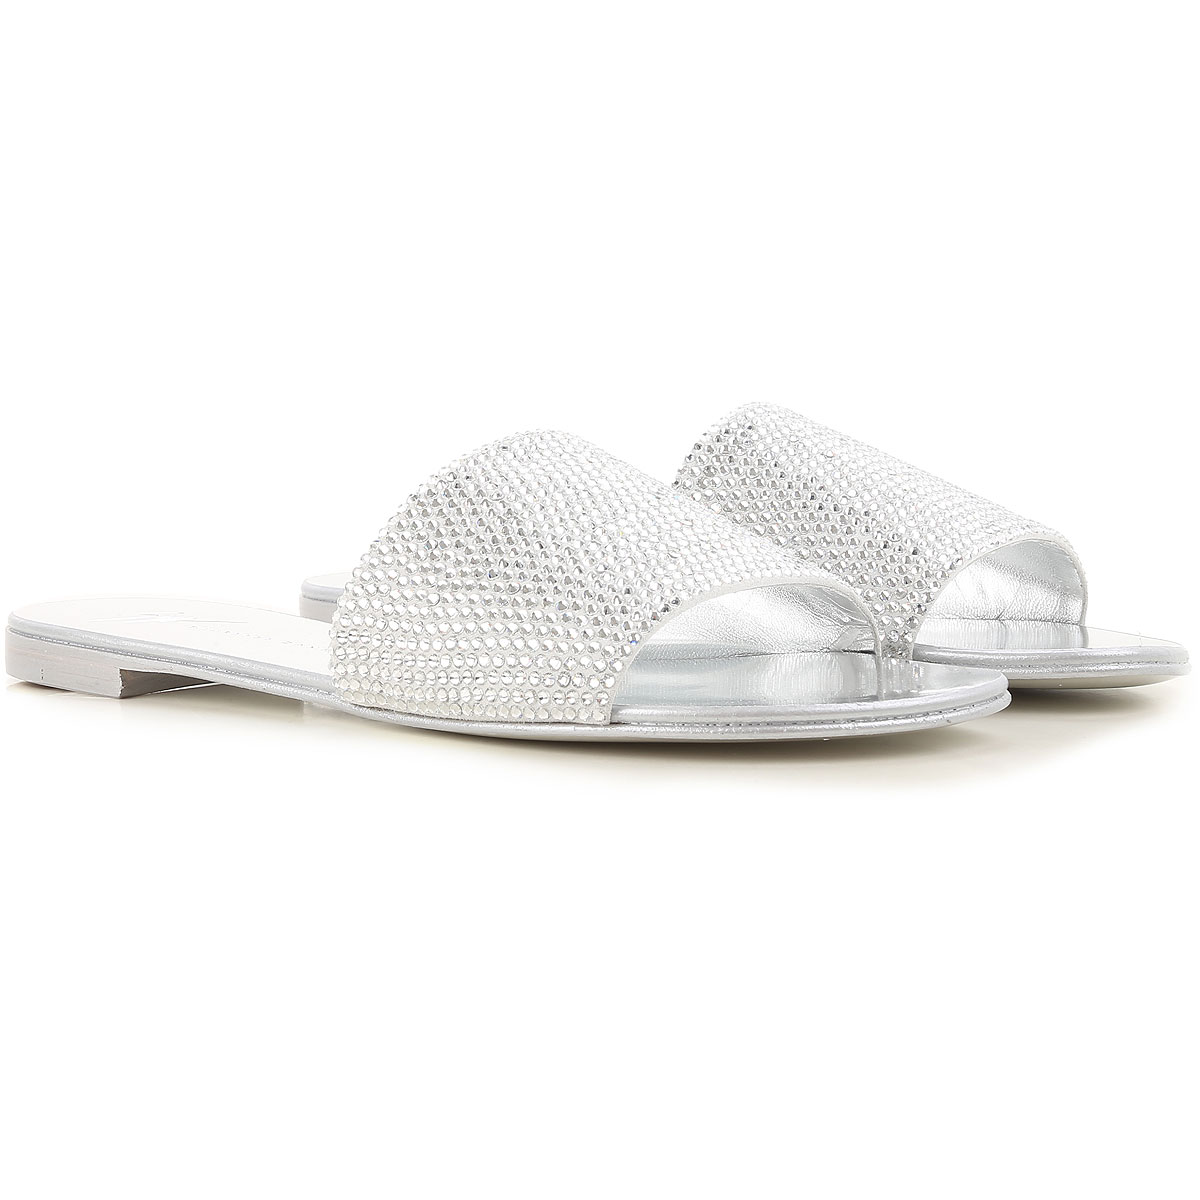 Giuseppe Zanotti Design Sandals for Women On Sale in Outlet, Silver, Leather, 2019, 8.5